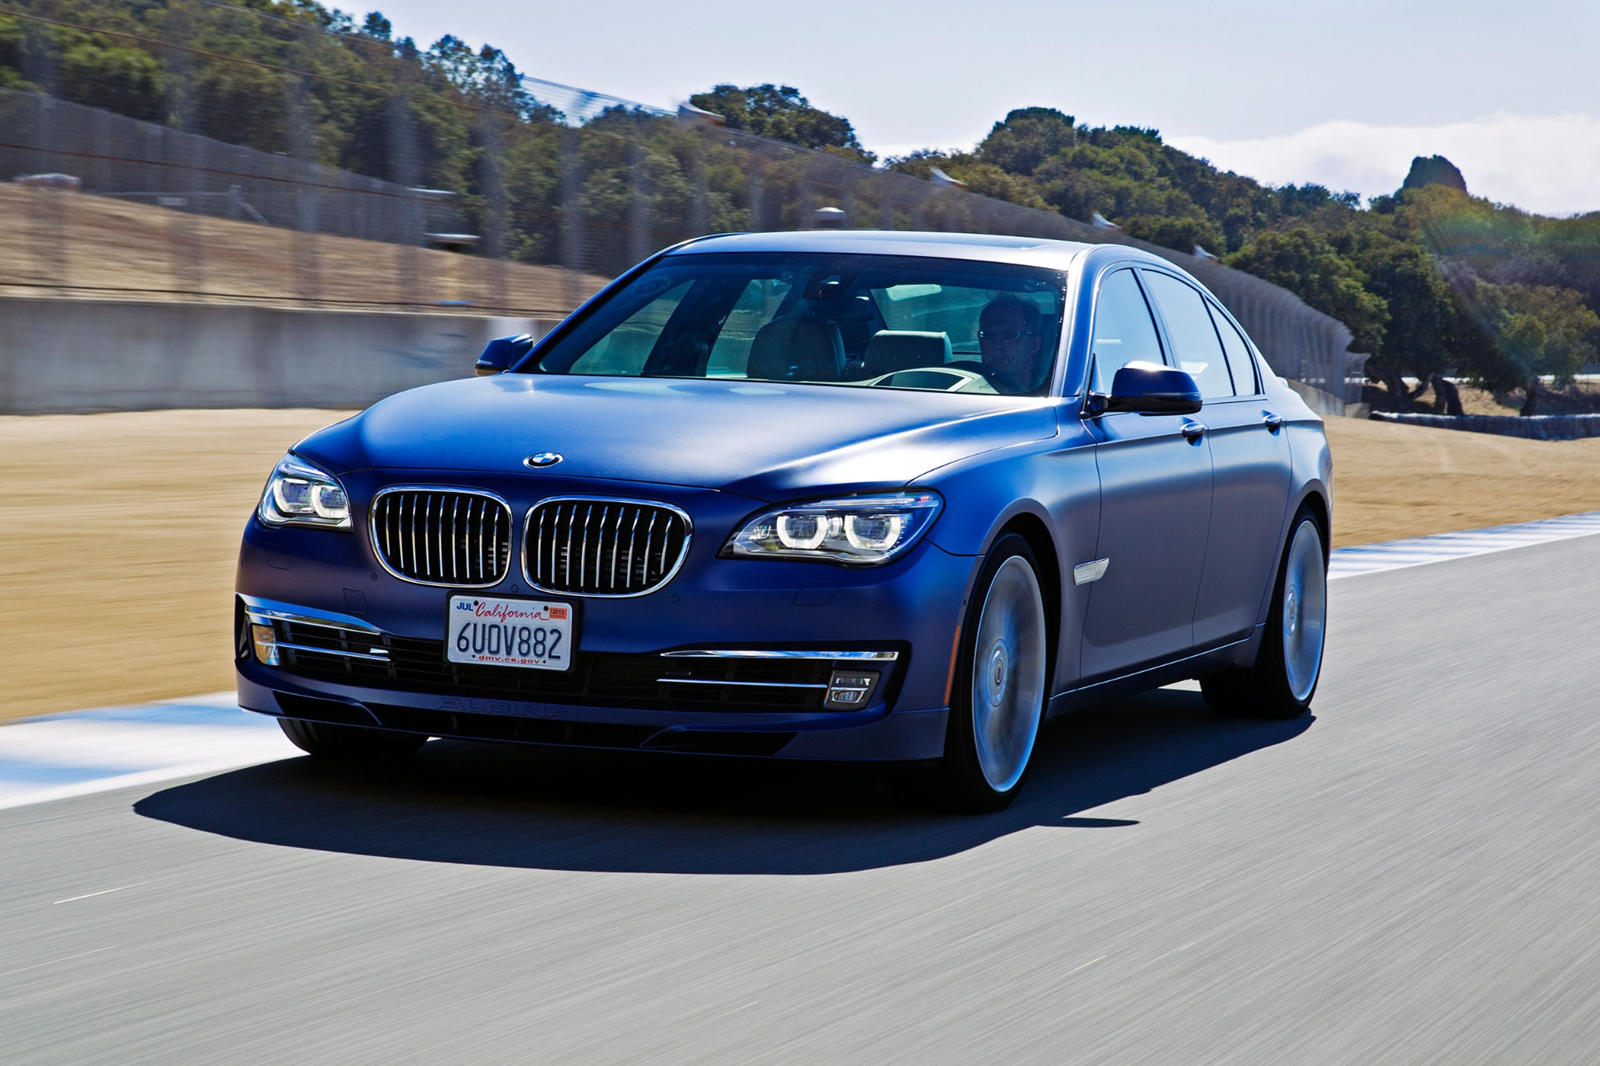 2014 Bmw Alpina B7 Review Trims Specs Price New Interior Features Exterior Design And Specifications Carbuzz